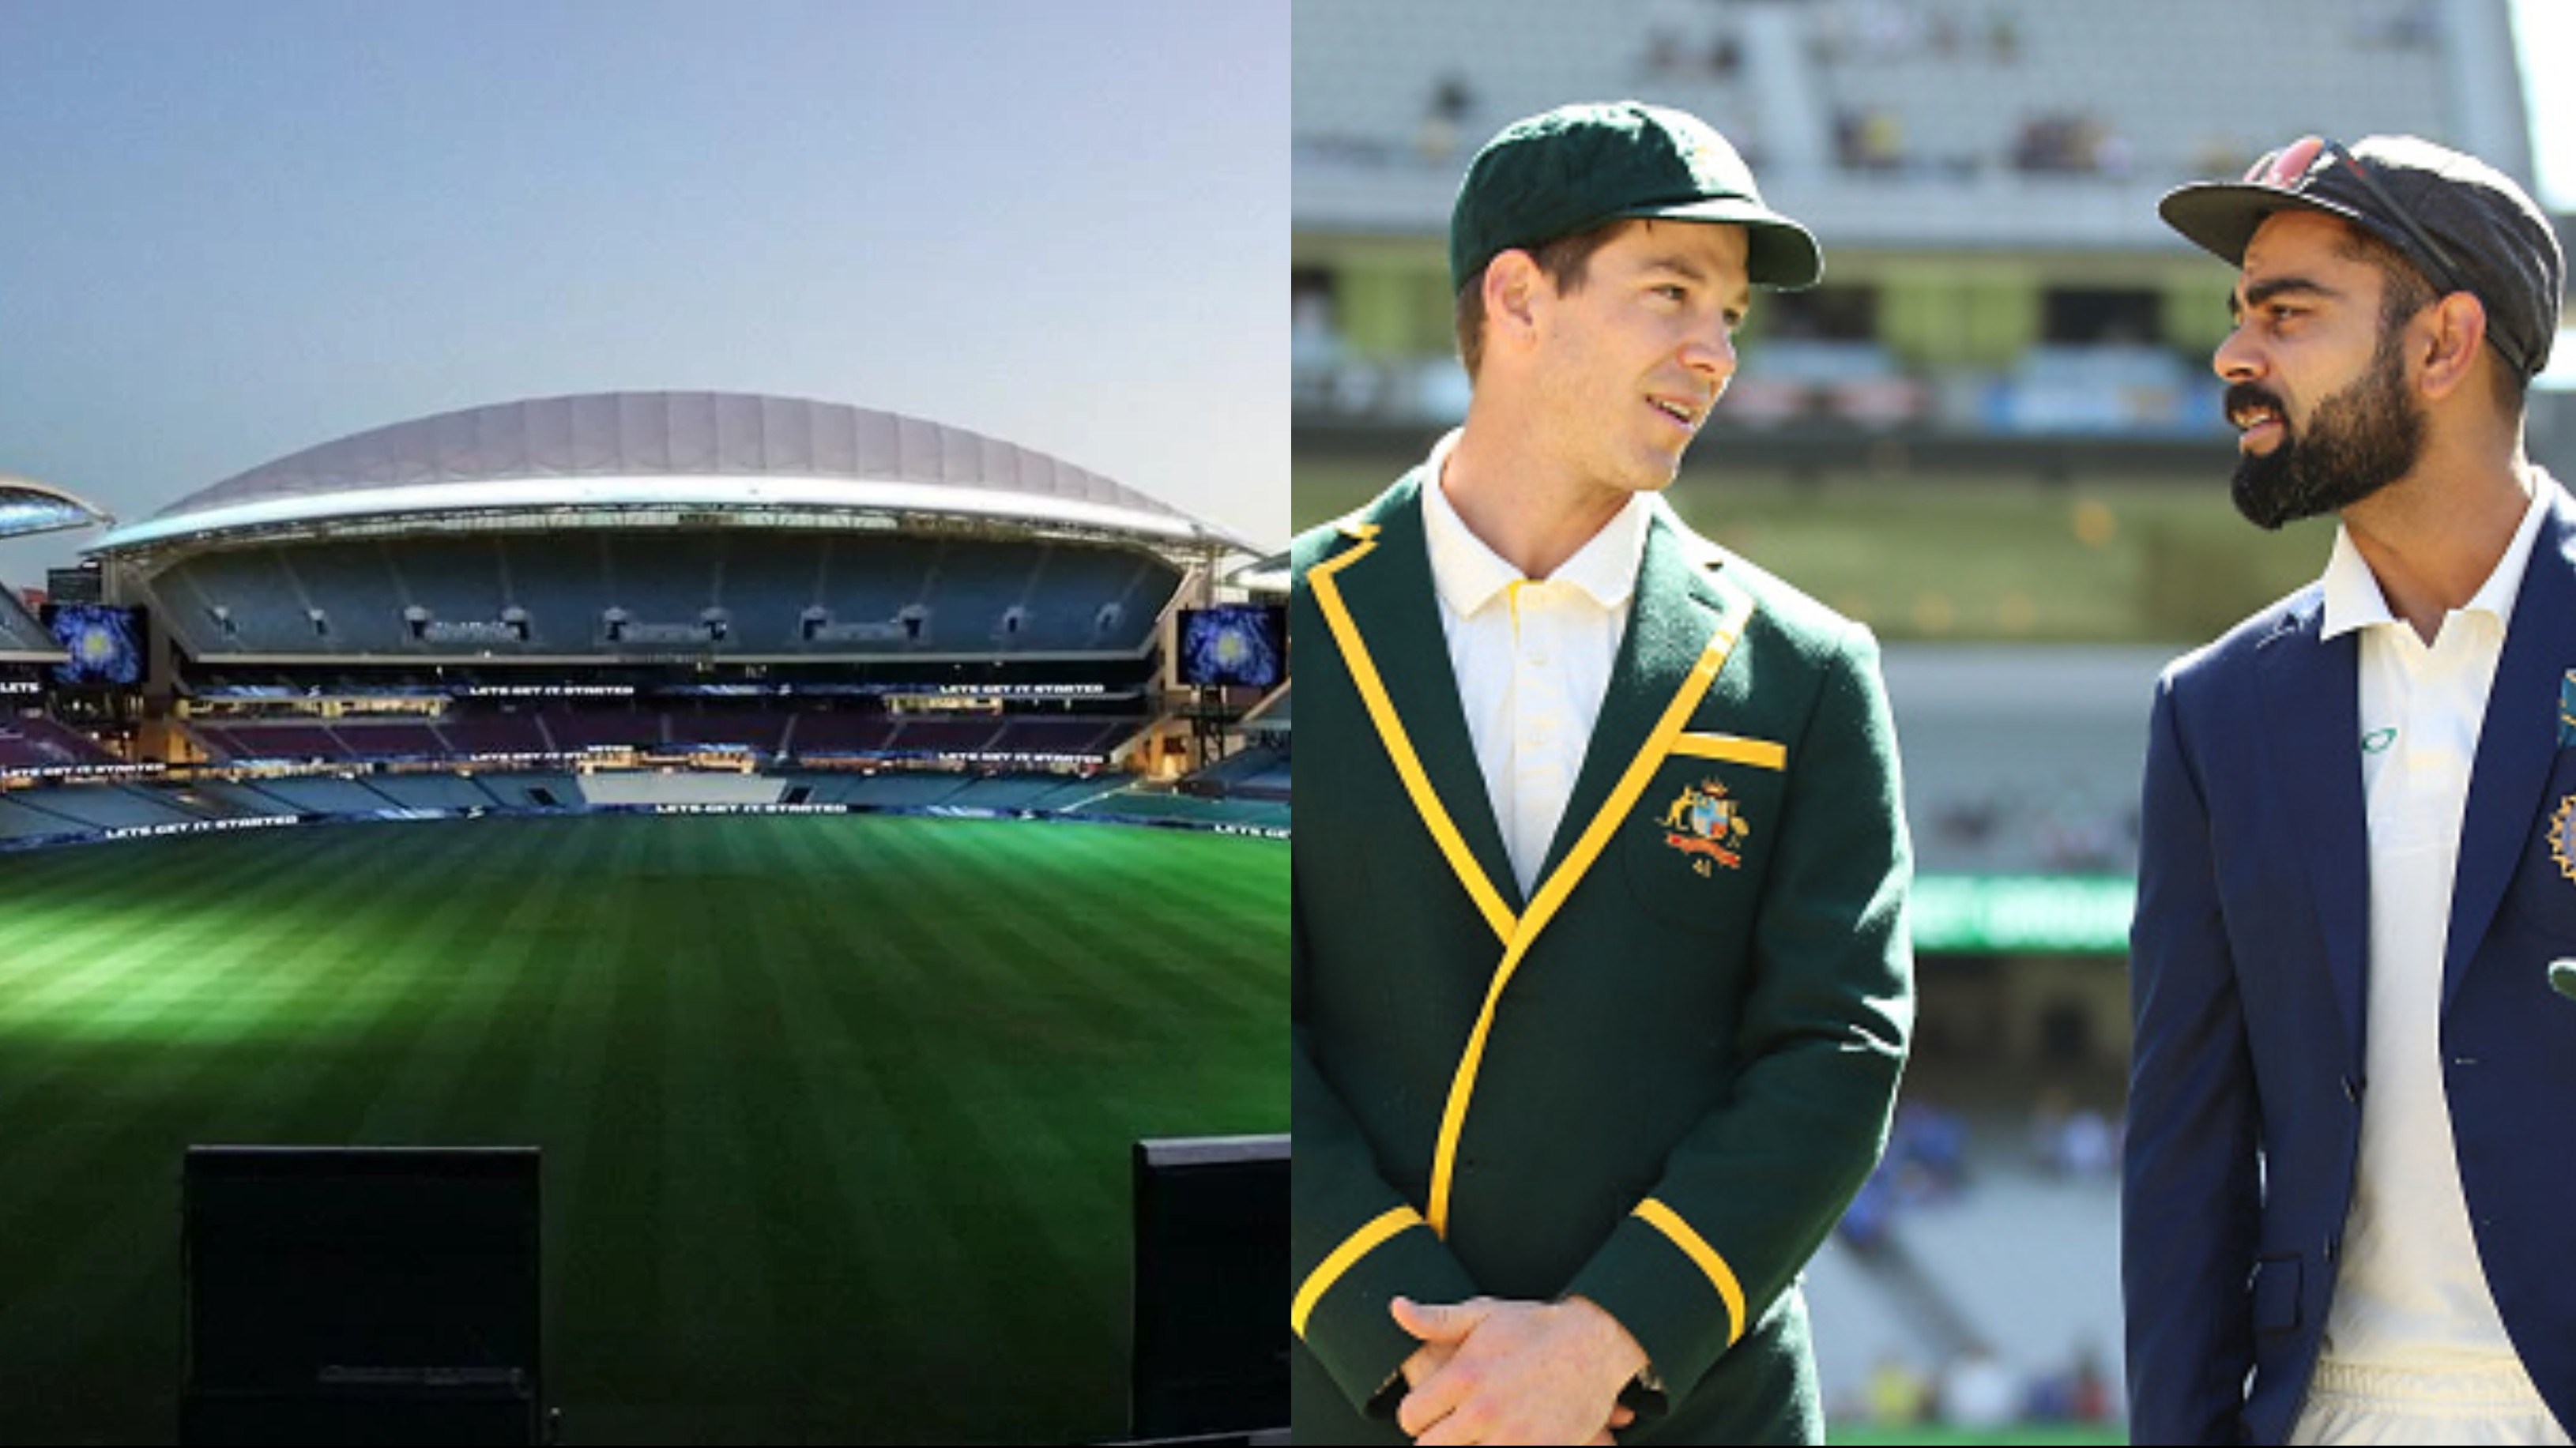 AUS v IND 2020-21: Adelaide set to host day-night Test with lockdown to be lifted in South Australia